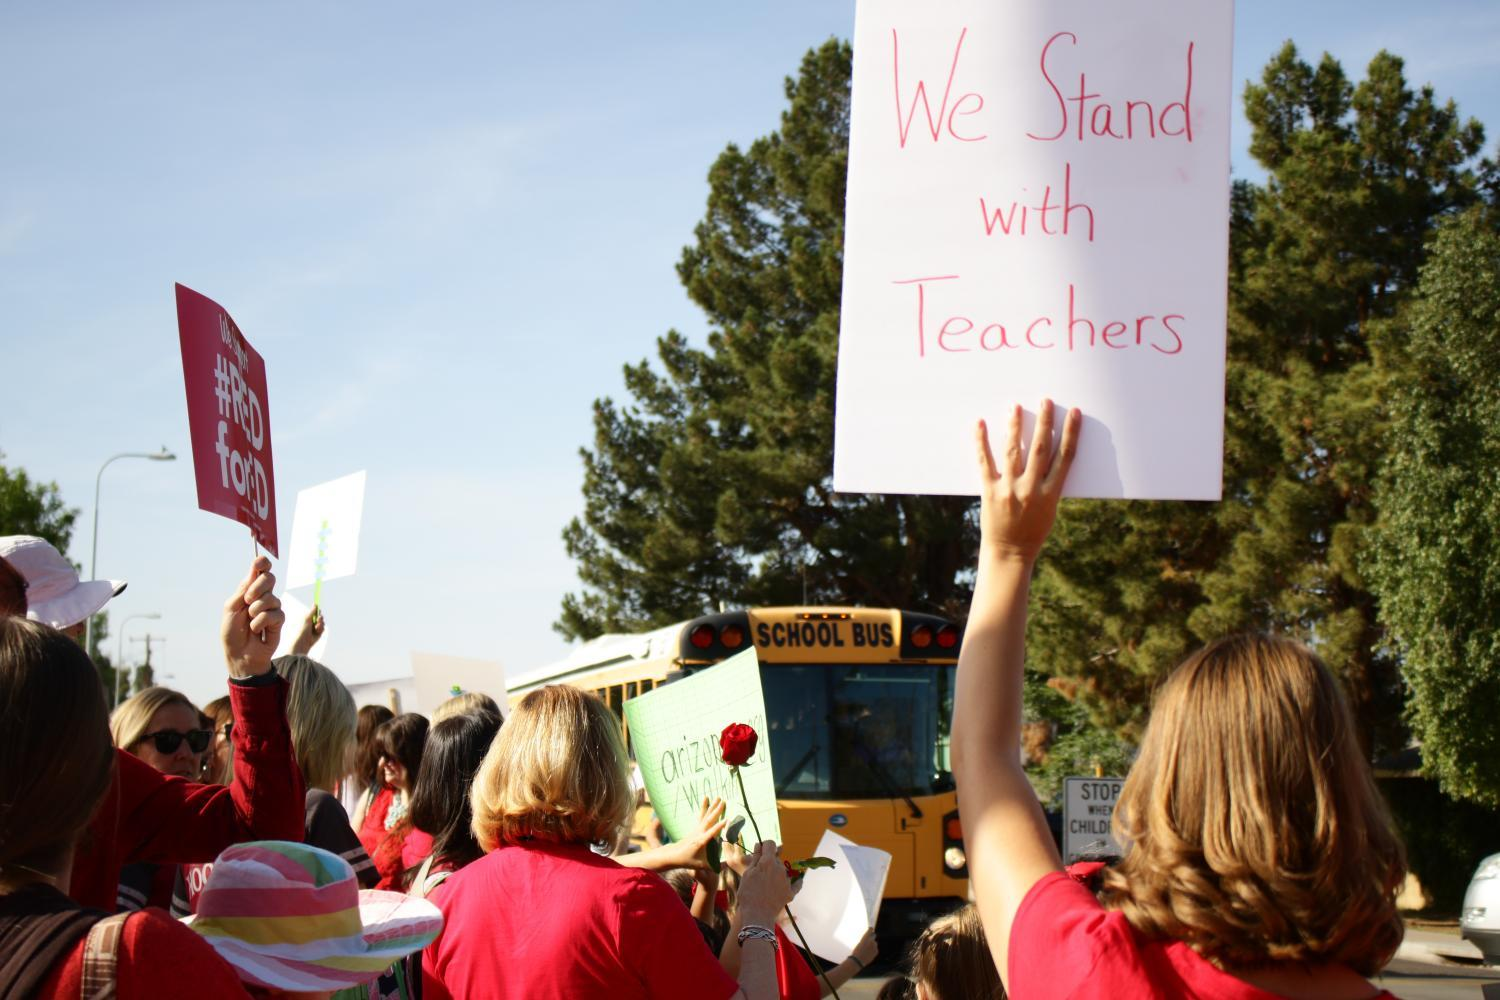 Supporters and teachers rallied outside Broadmor Elementary